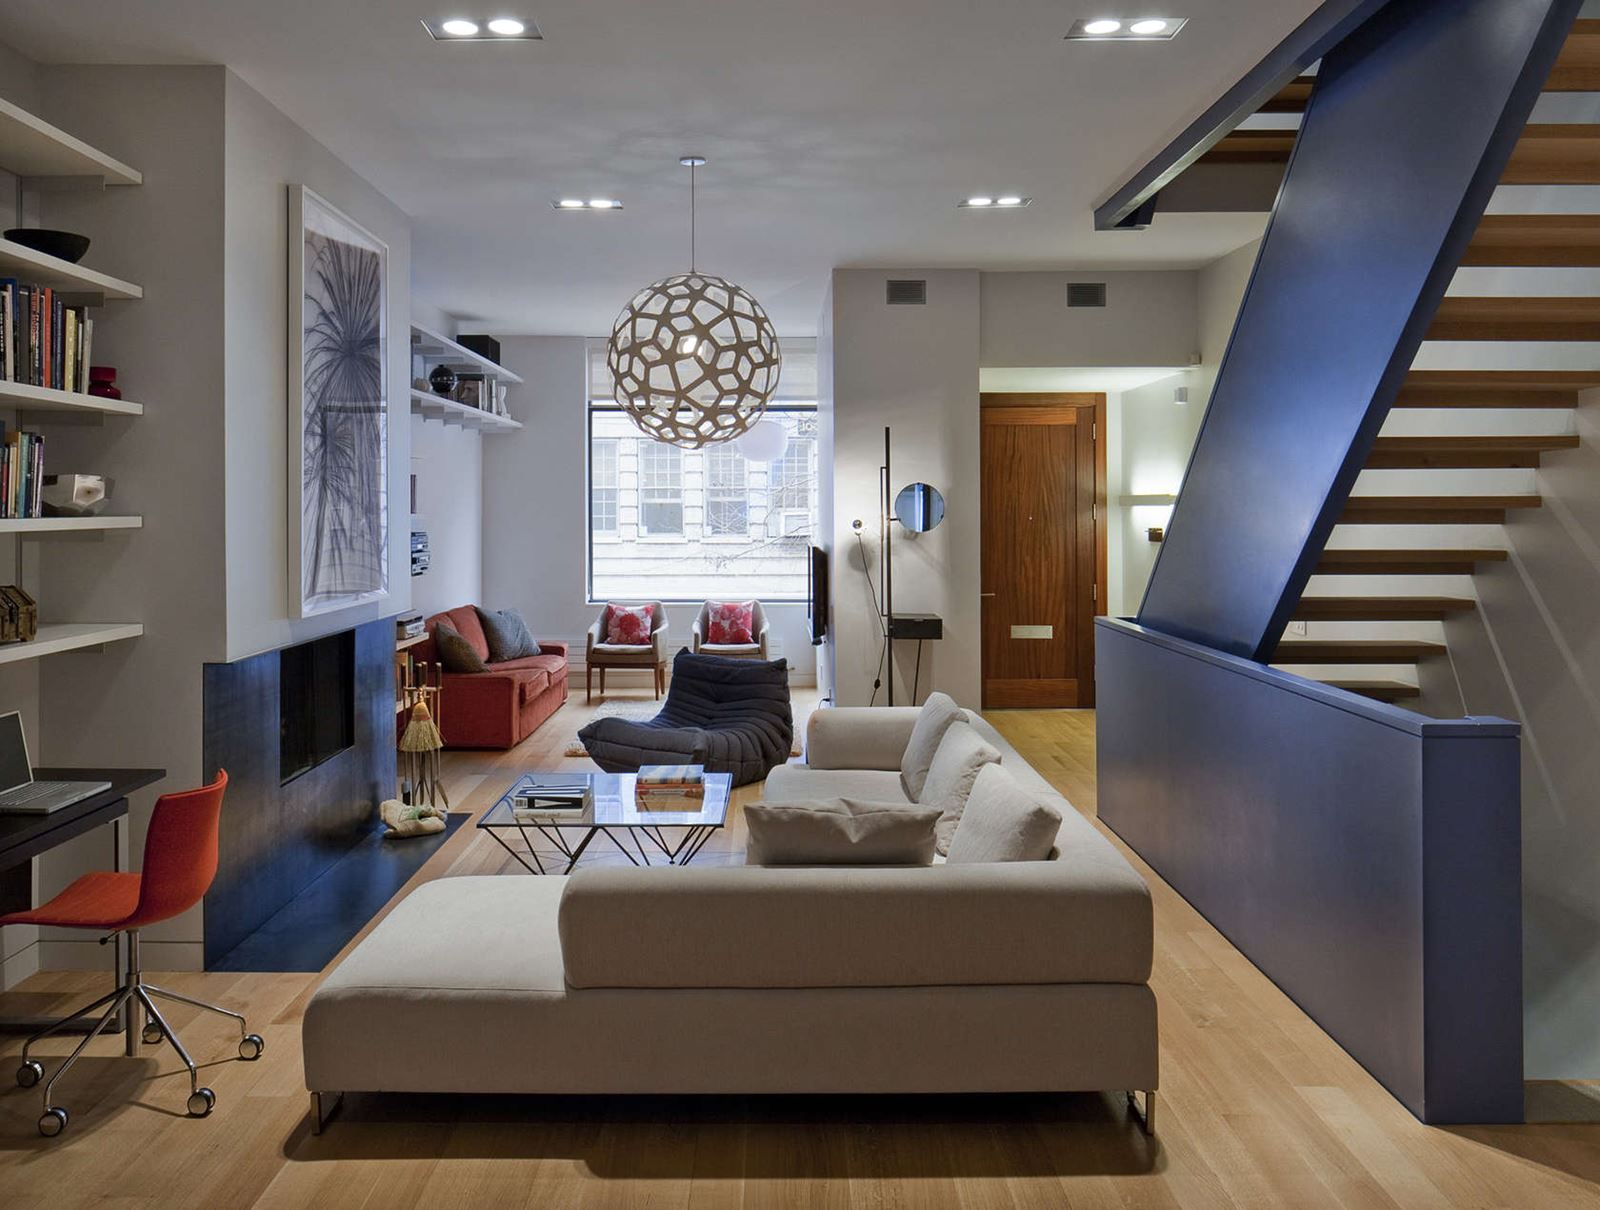 Townhouse Interior In New York. Townhouse Interior Design Ideas Philippines Part 17